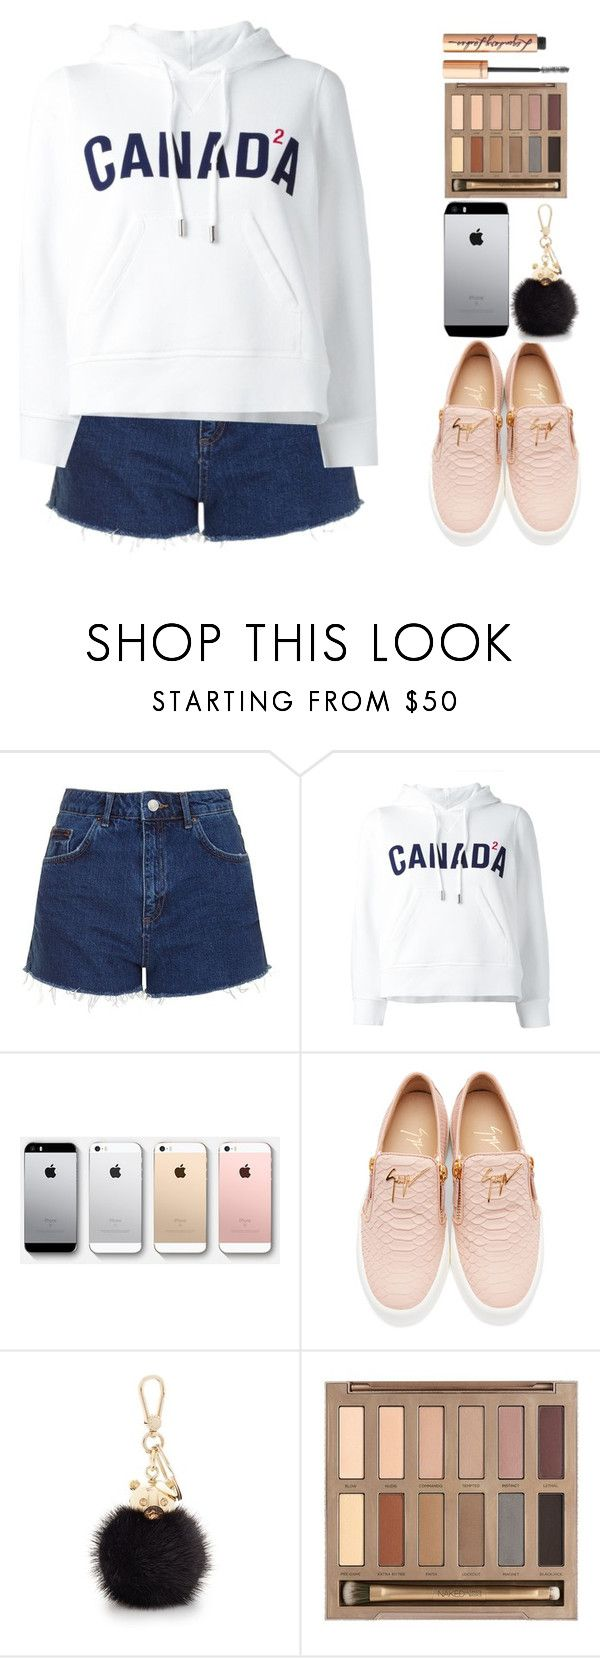 """Canada!!!"" by uniicorns-taking-over ❤ liked on Polyvore featuring Topshop, Dsquared2, Giuseppe Zanotti, Furla, Urban Decay and Charlotte Tilbury"